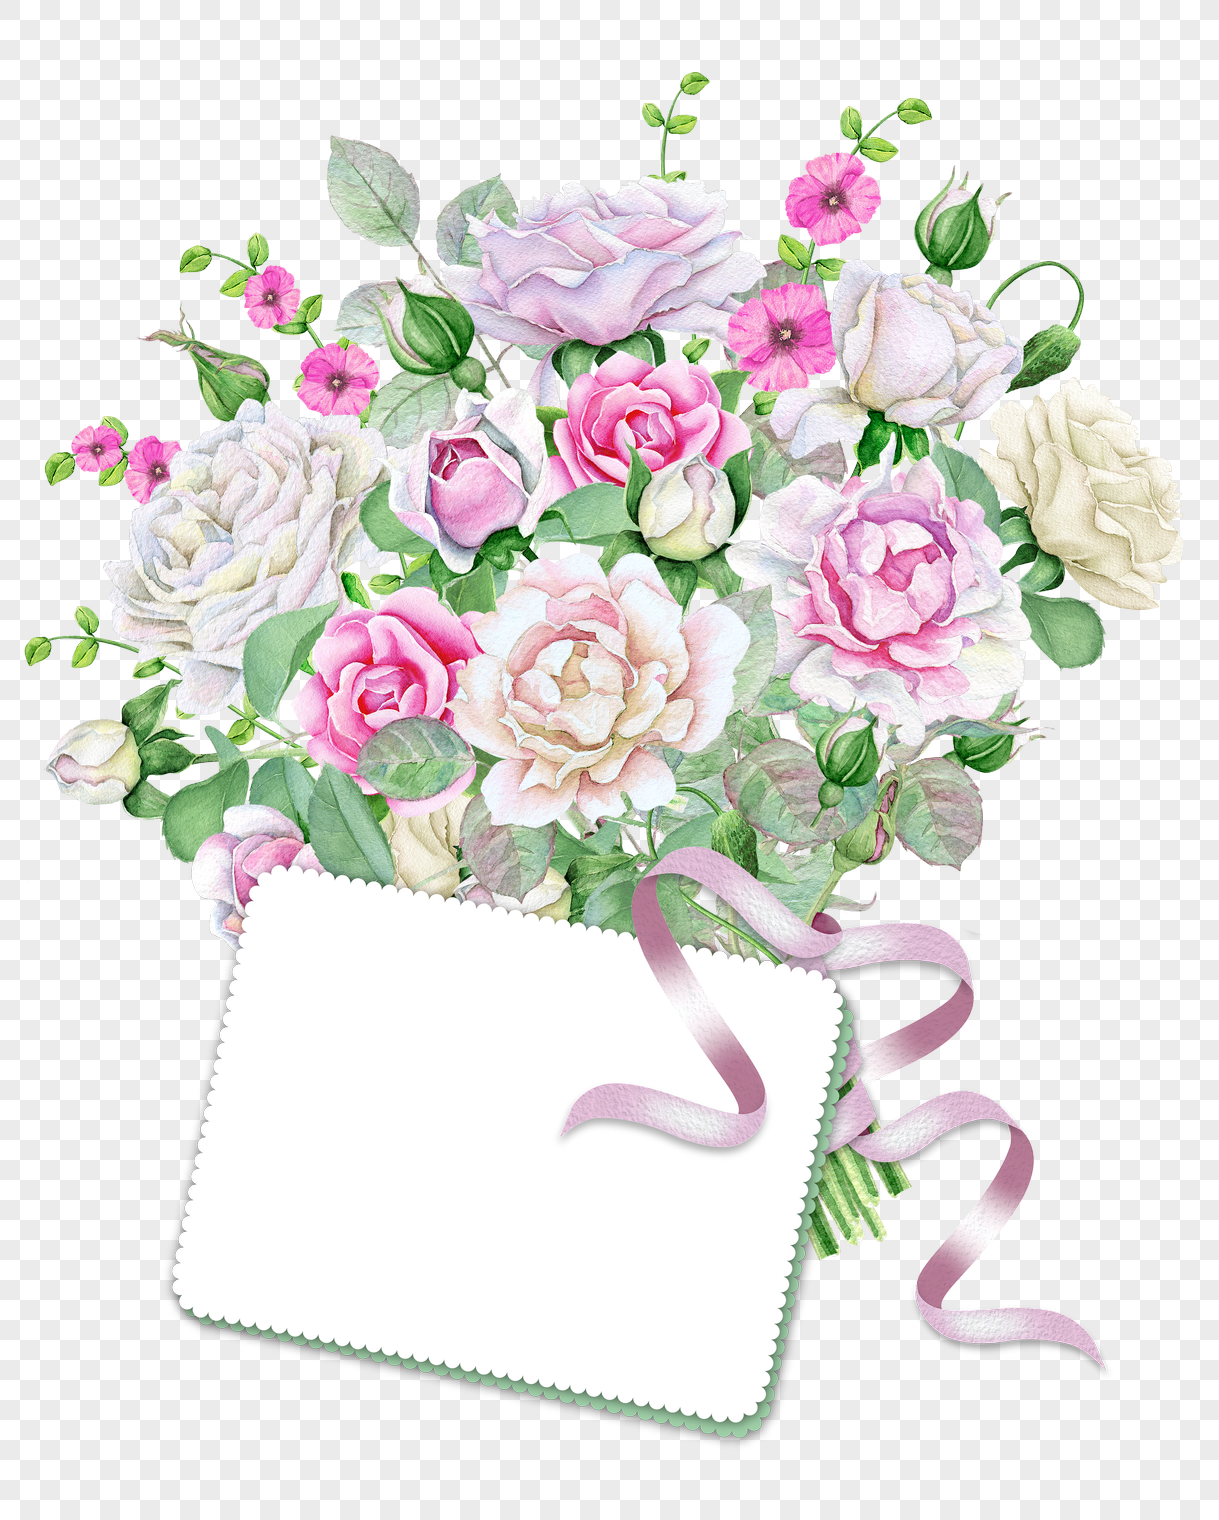 Coloured Painted Bouquet Vector Png Imagepicture Free Download